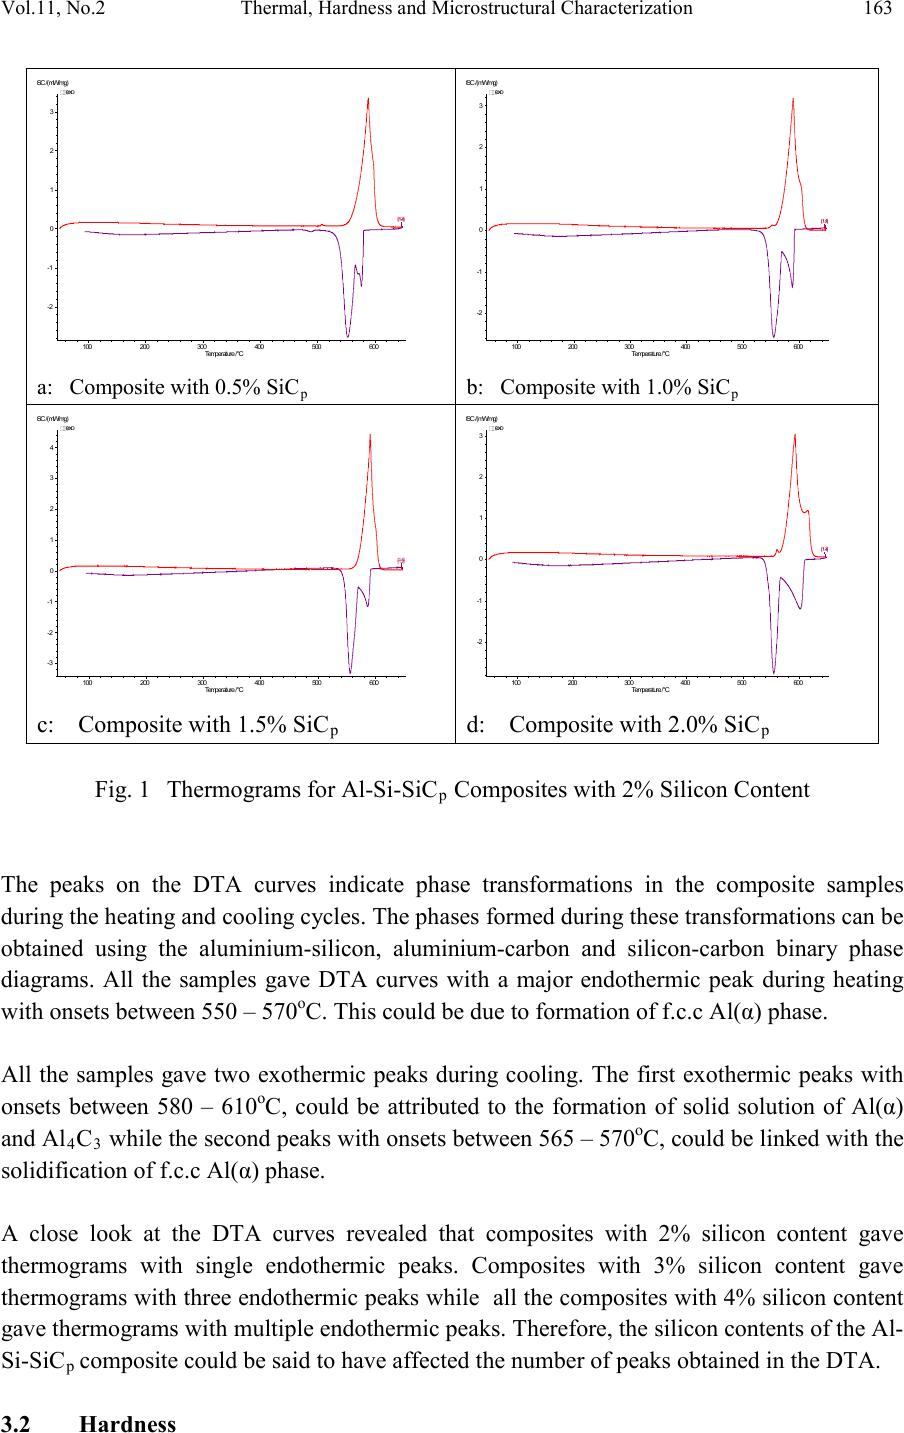 Thermal hardness and microstructural characterization of al si vol11 no2 thermal hardness and microstructural characterization 163 pooptronica